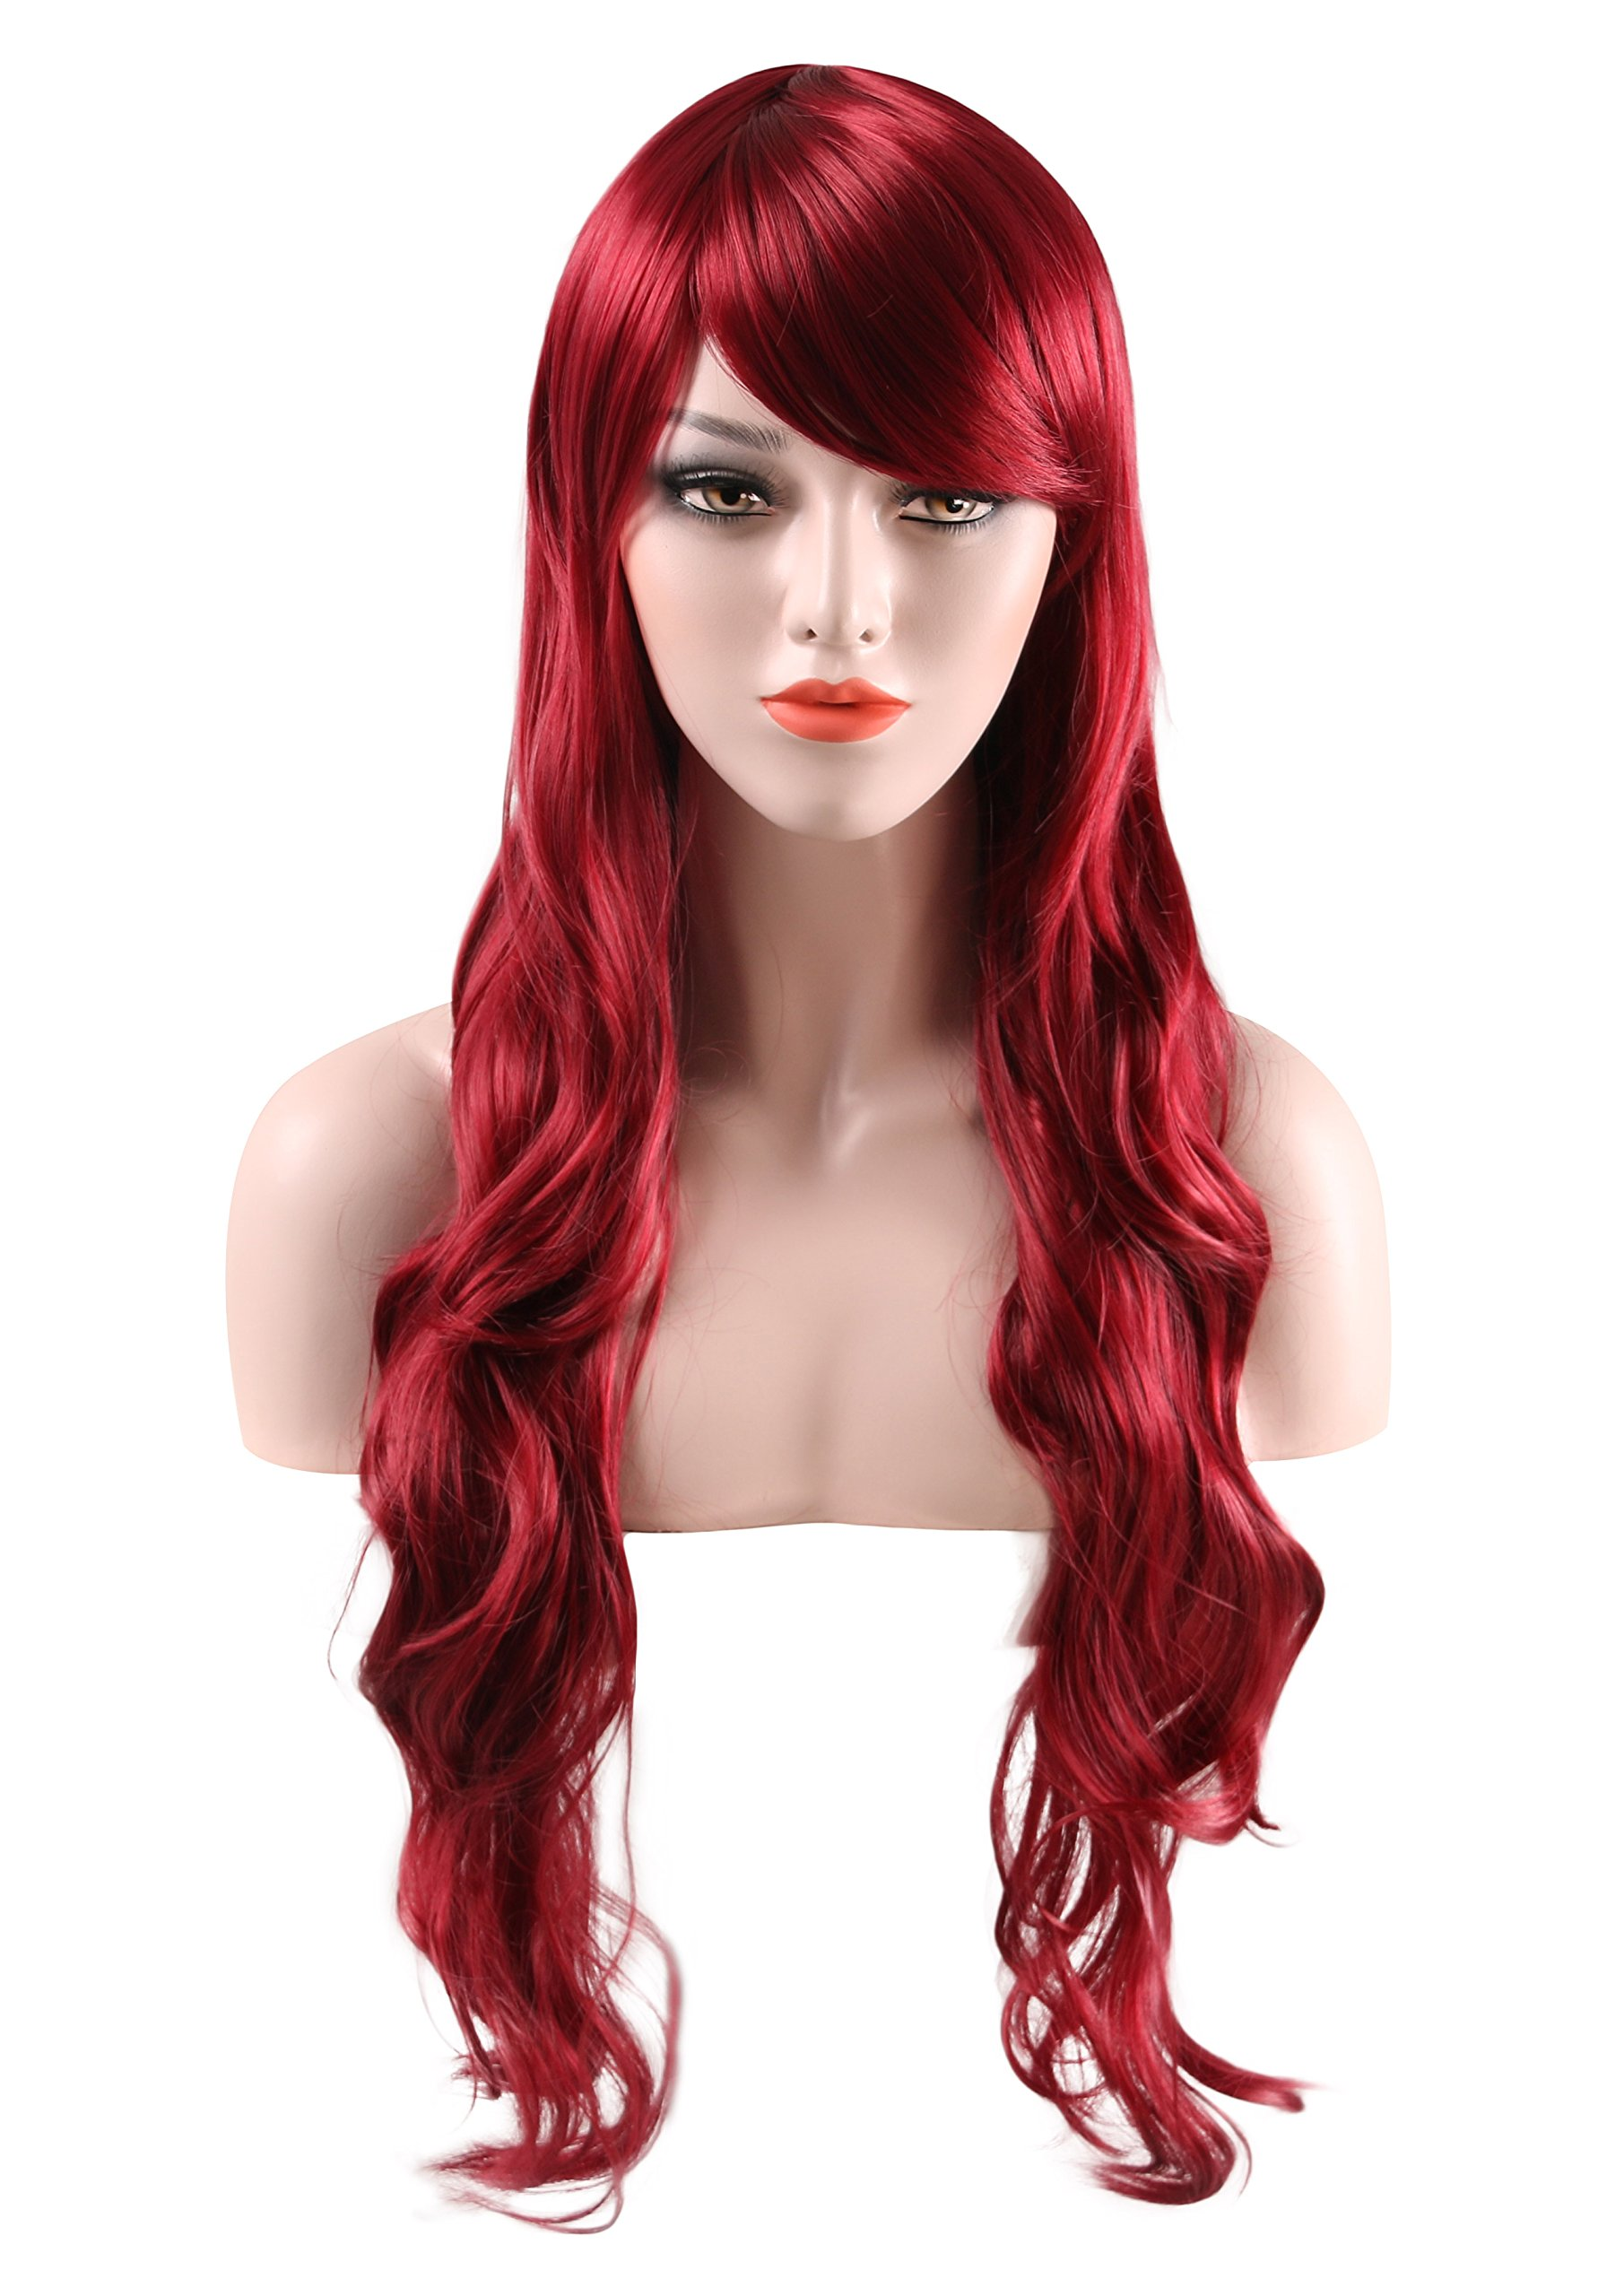 U.mslady Wigs 80 cm/32'' Women's Hair Wig Long Curly Hair Heat Resistant Spiral Wig for Cosplay/Halloween Party with Wig Cap (Dark Red)